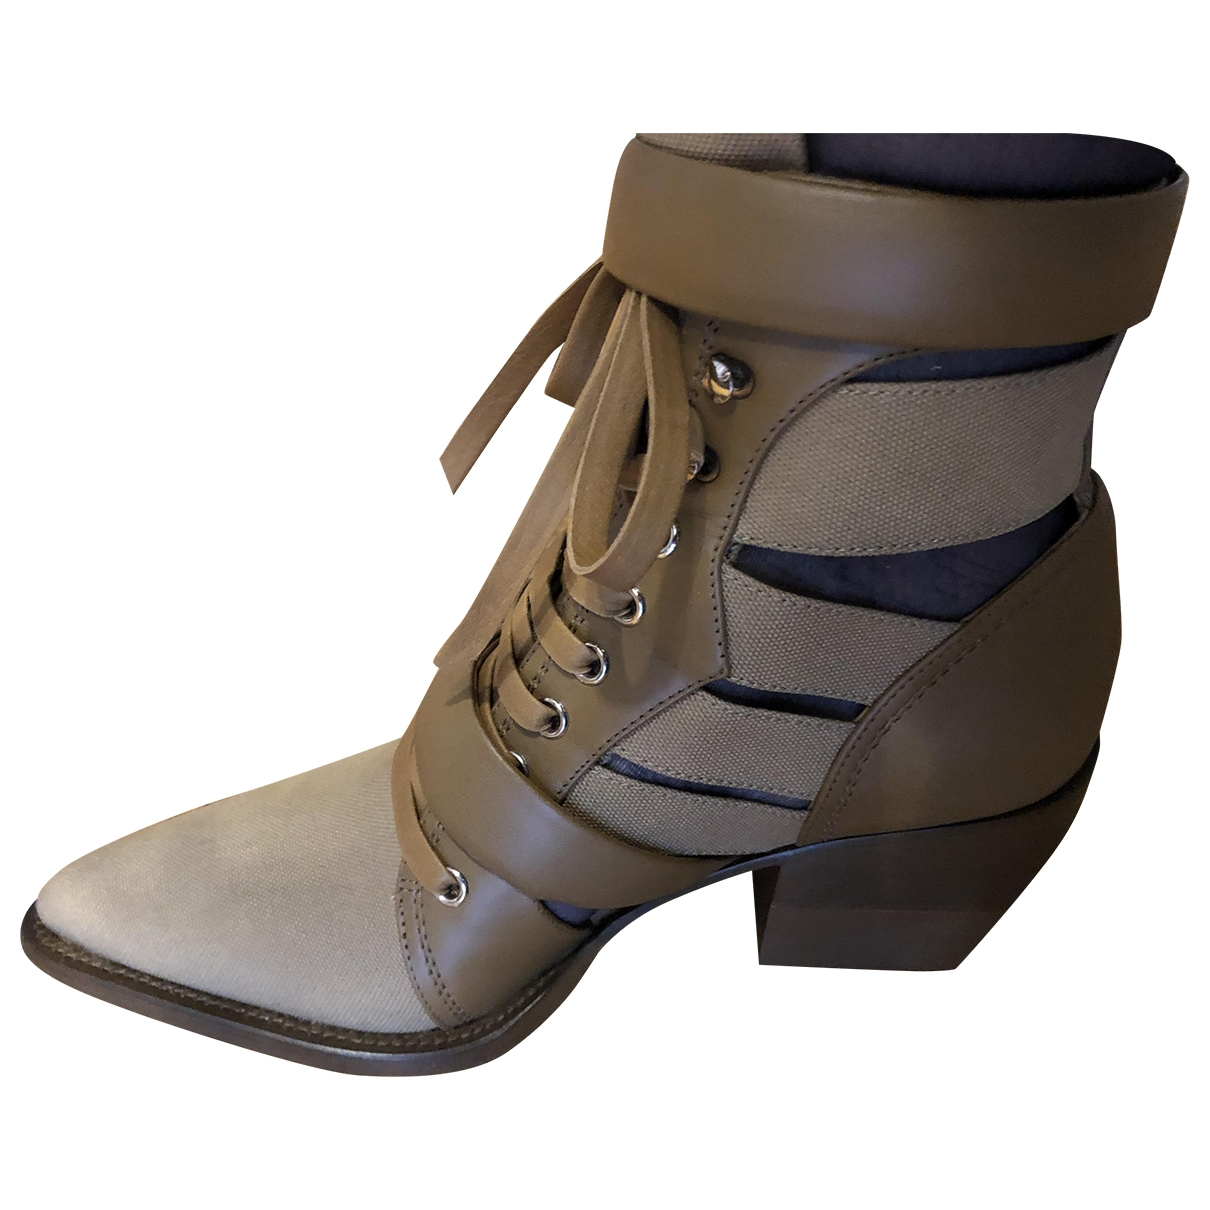 Chloé Rylee Camel Cloth Ankle boots for Women 40 EU